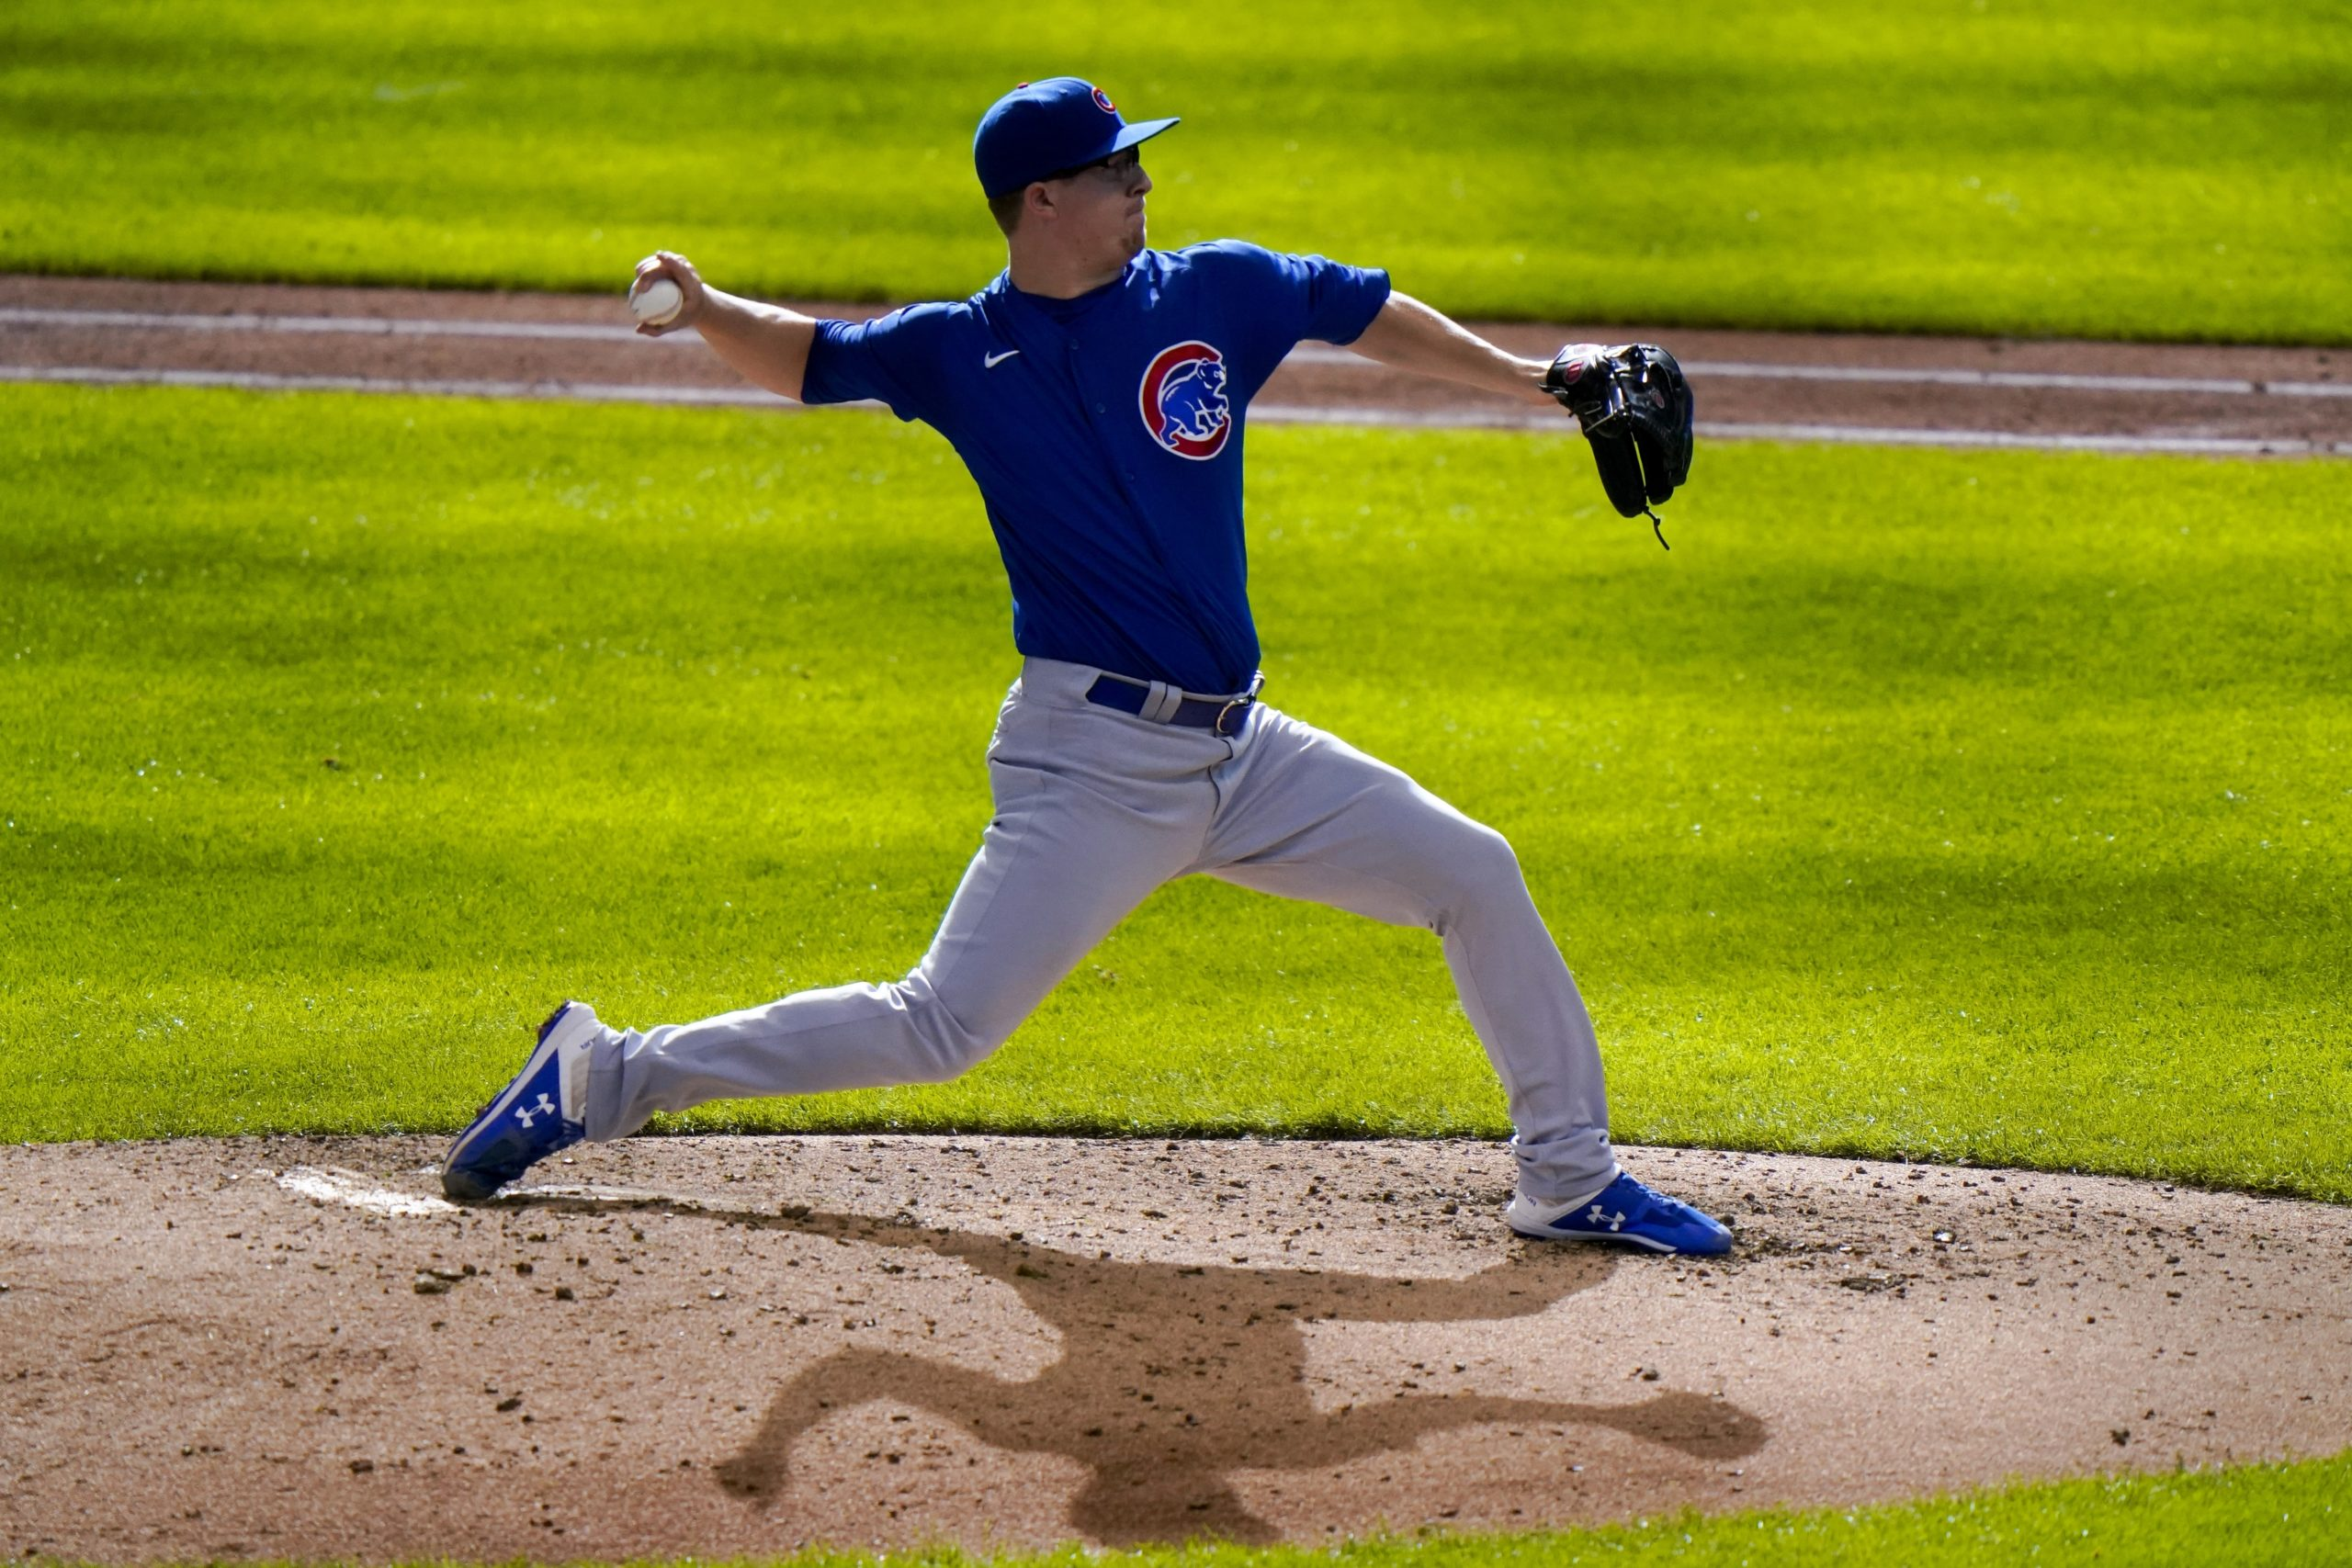 Photo of Chicago Cubs Score and Recap (9/13/20): Cubs 12, Brewers 0 – Alec Mills Throws No-hitter in Blowout Win